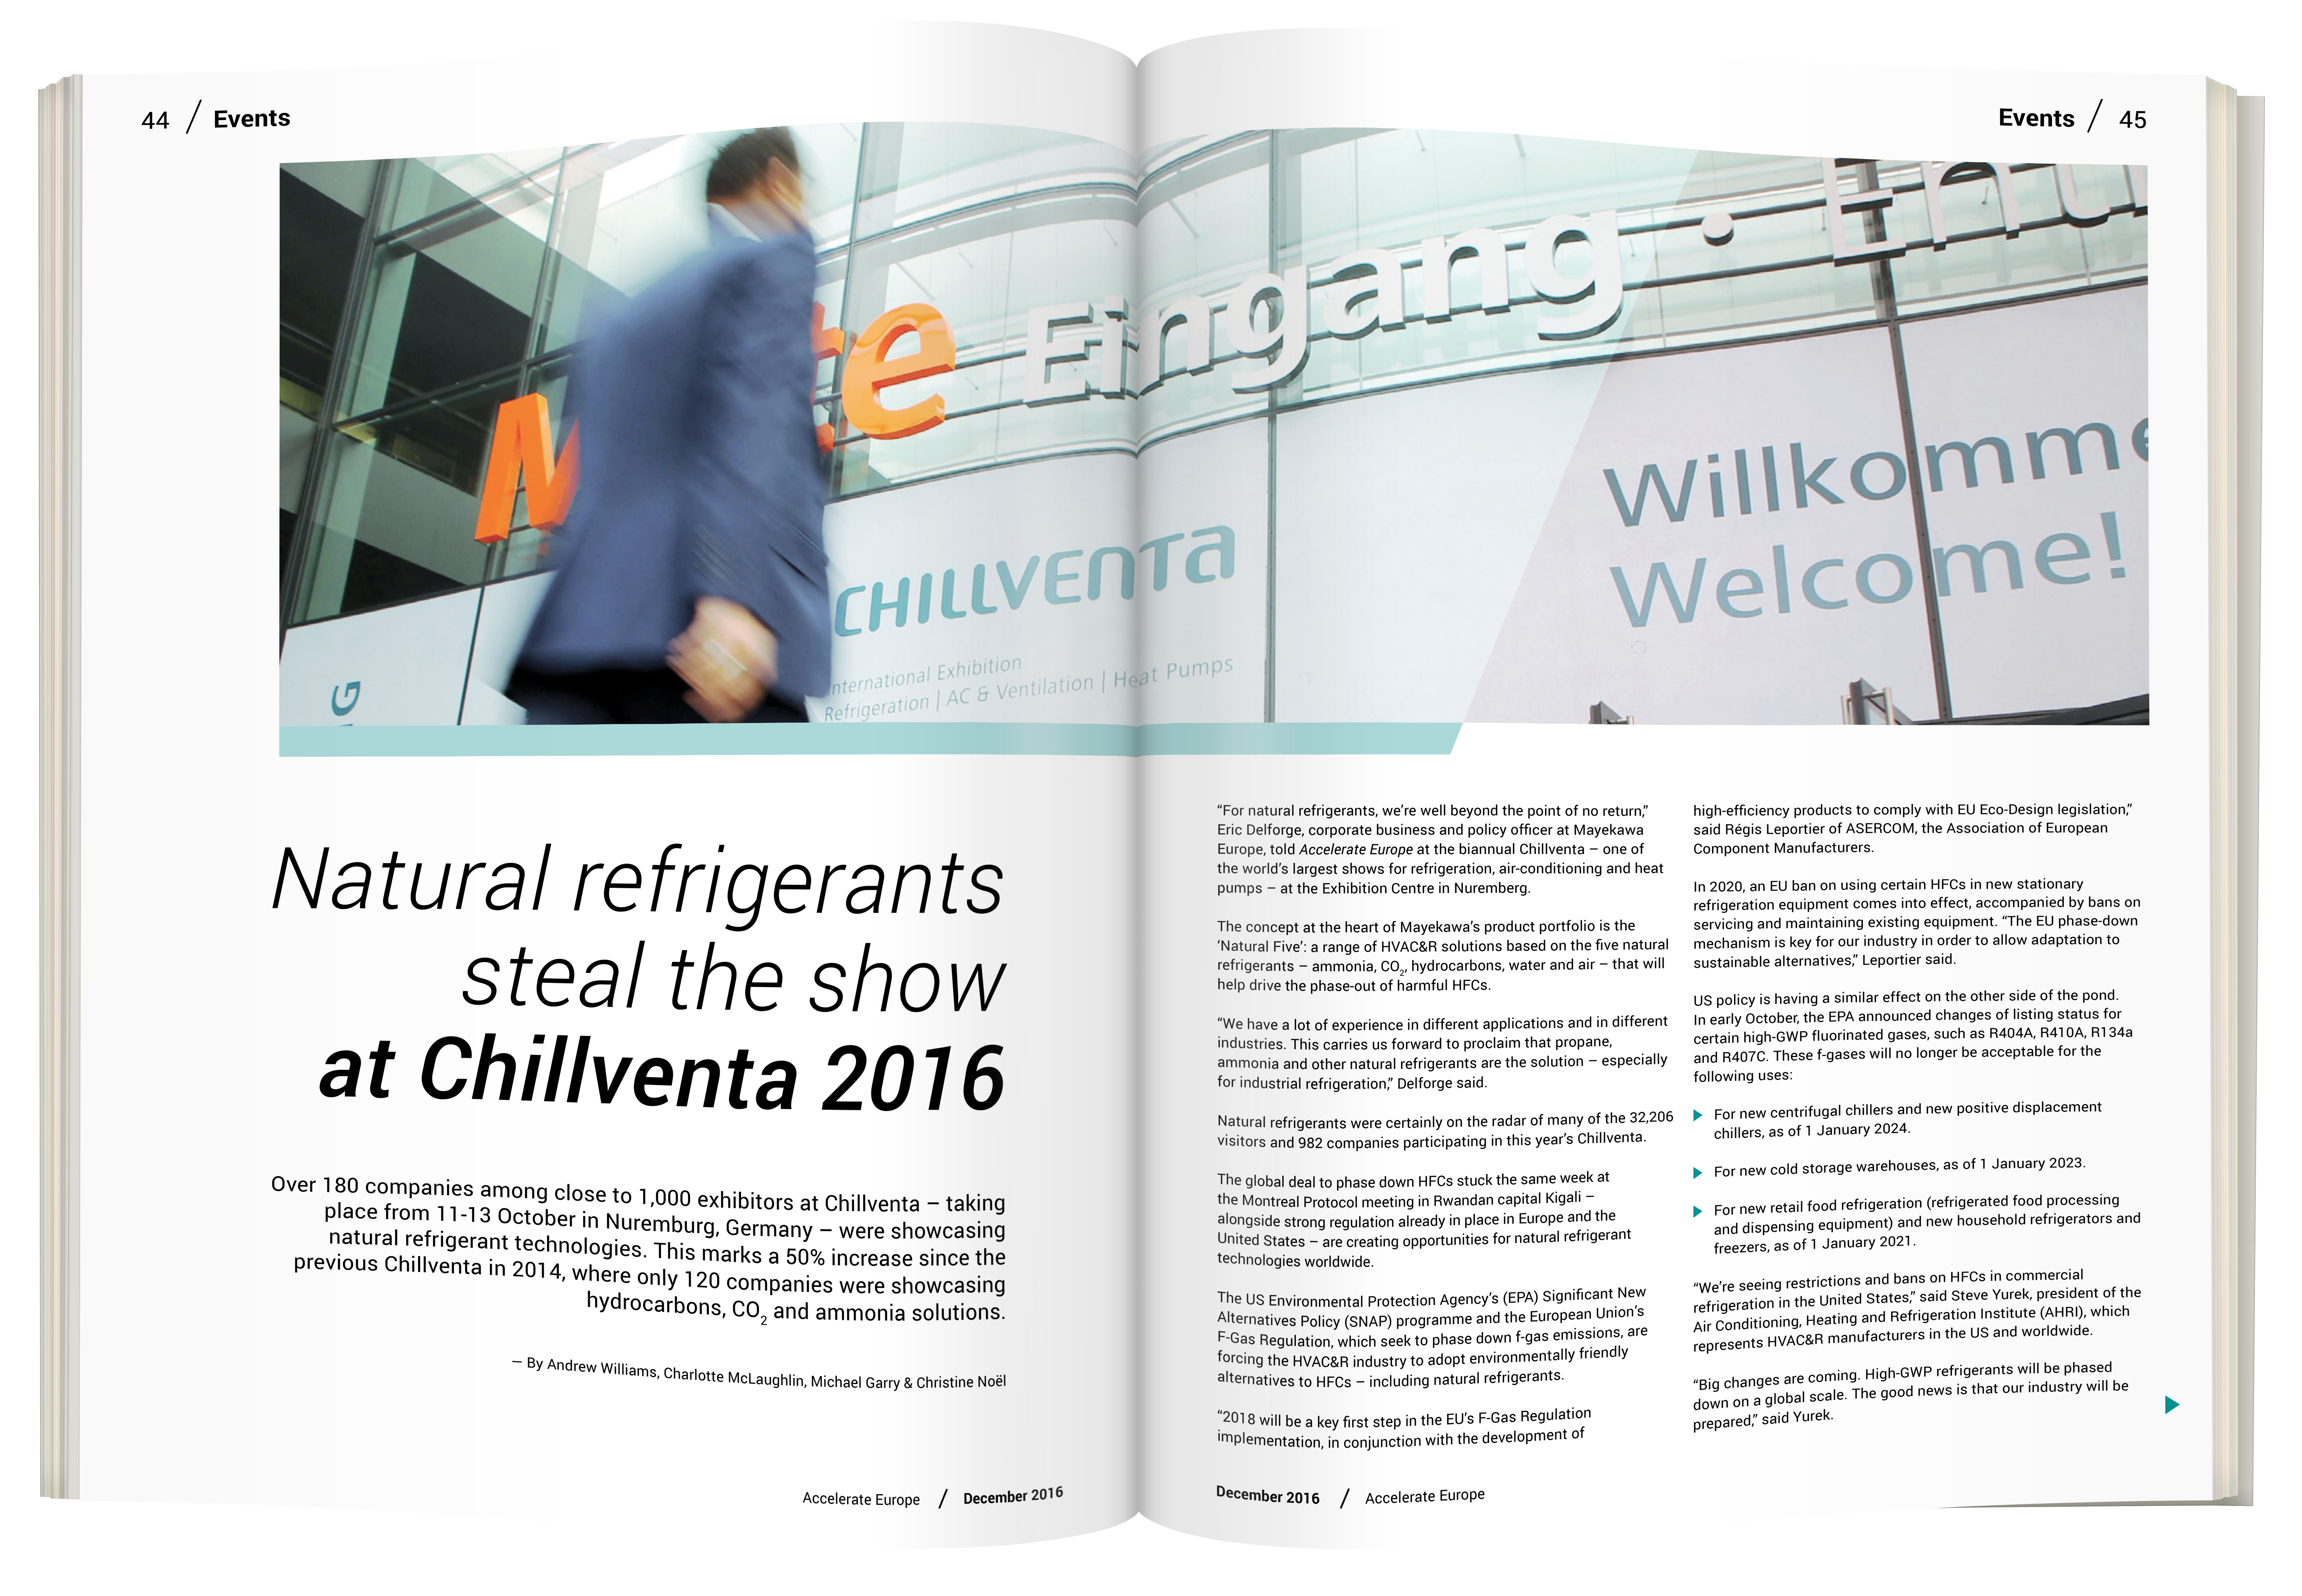 Natrefs steal the show at Chillventa